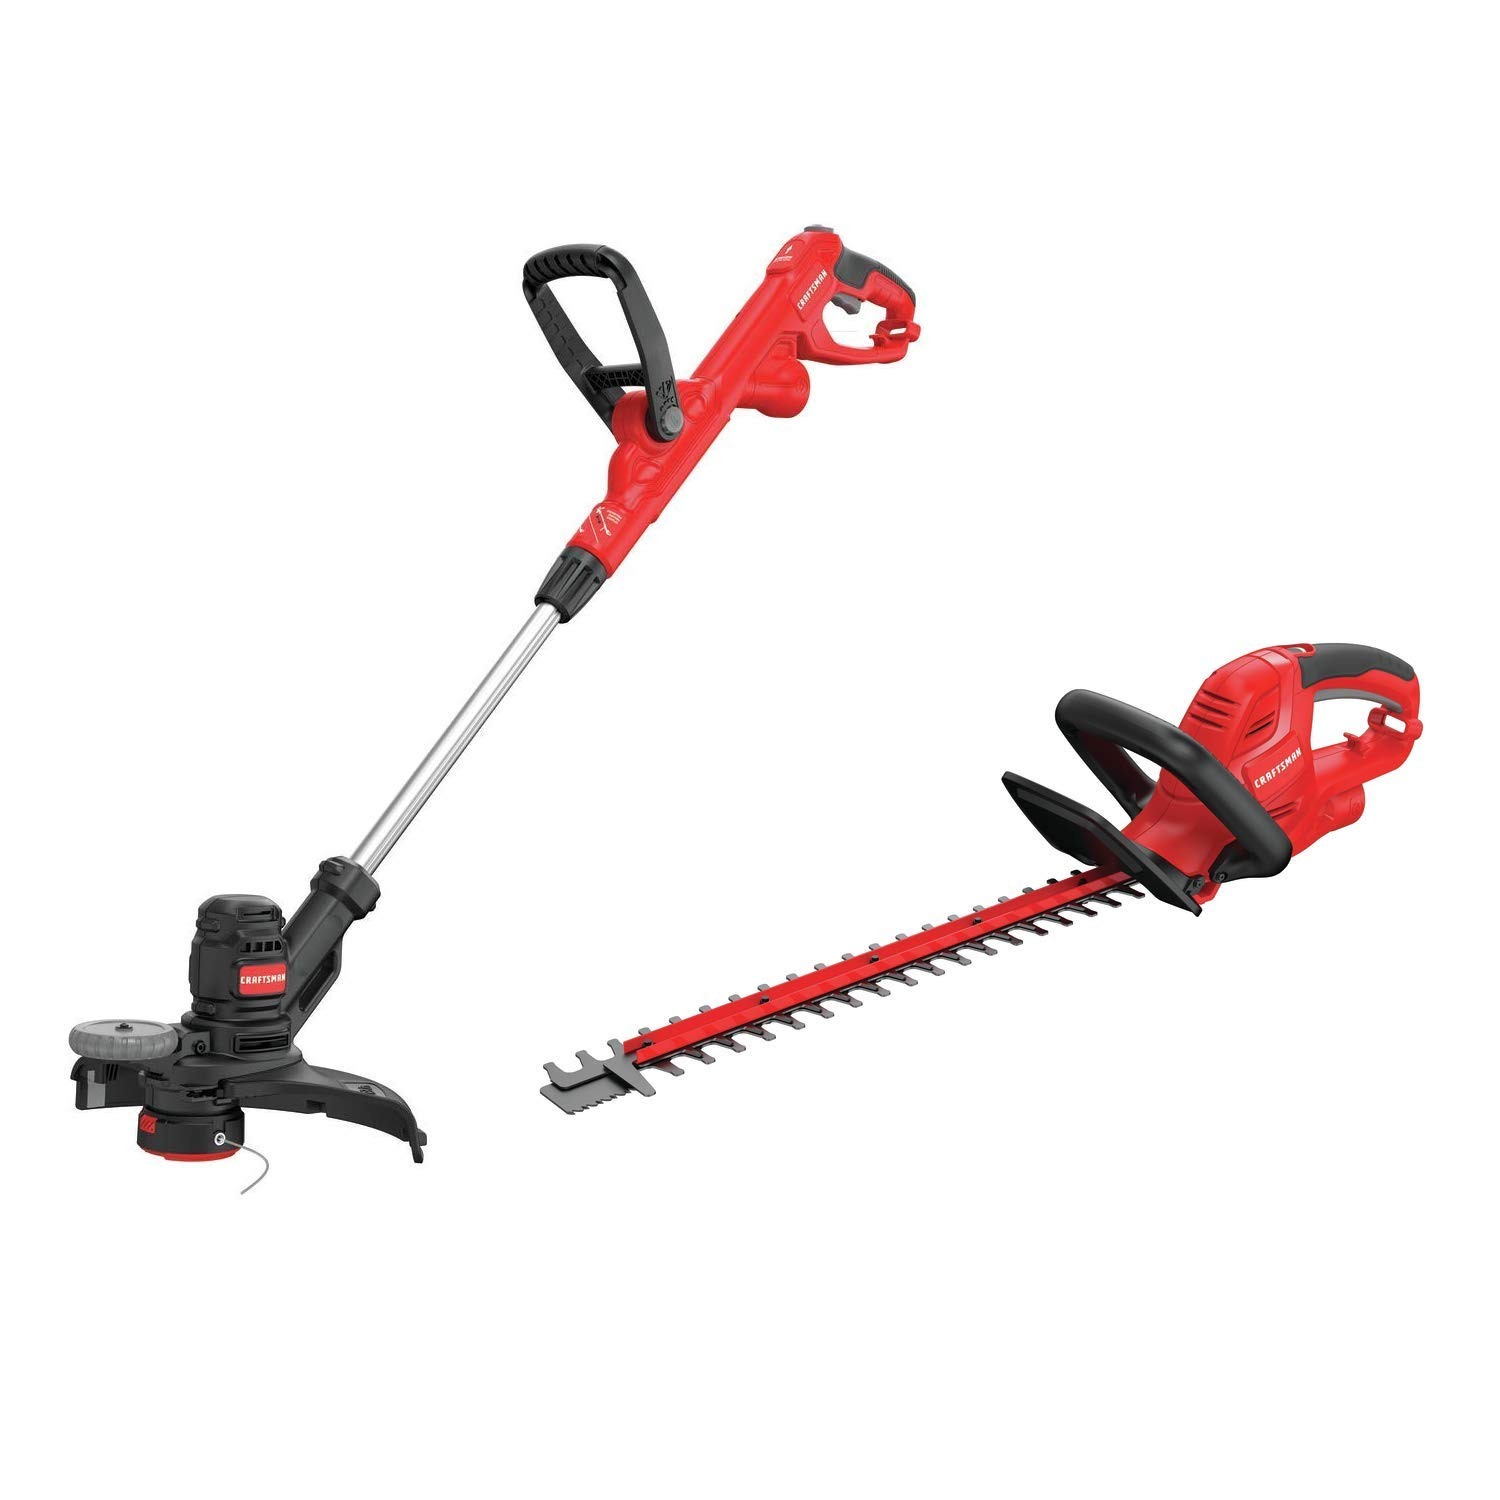 CRAFTSMAN CMESTE920 6.5Amp Electric String Trimmer w Push Button Feed System with CMEHTS822 22 Electric Hedge Trimmer